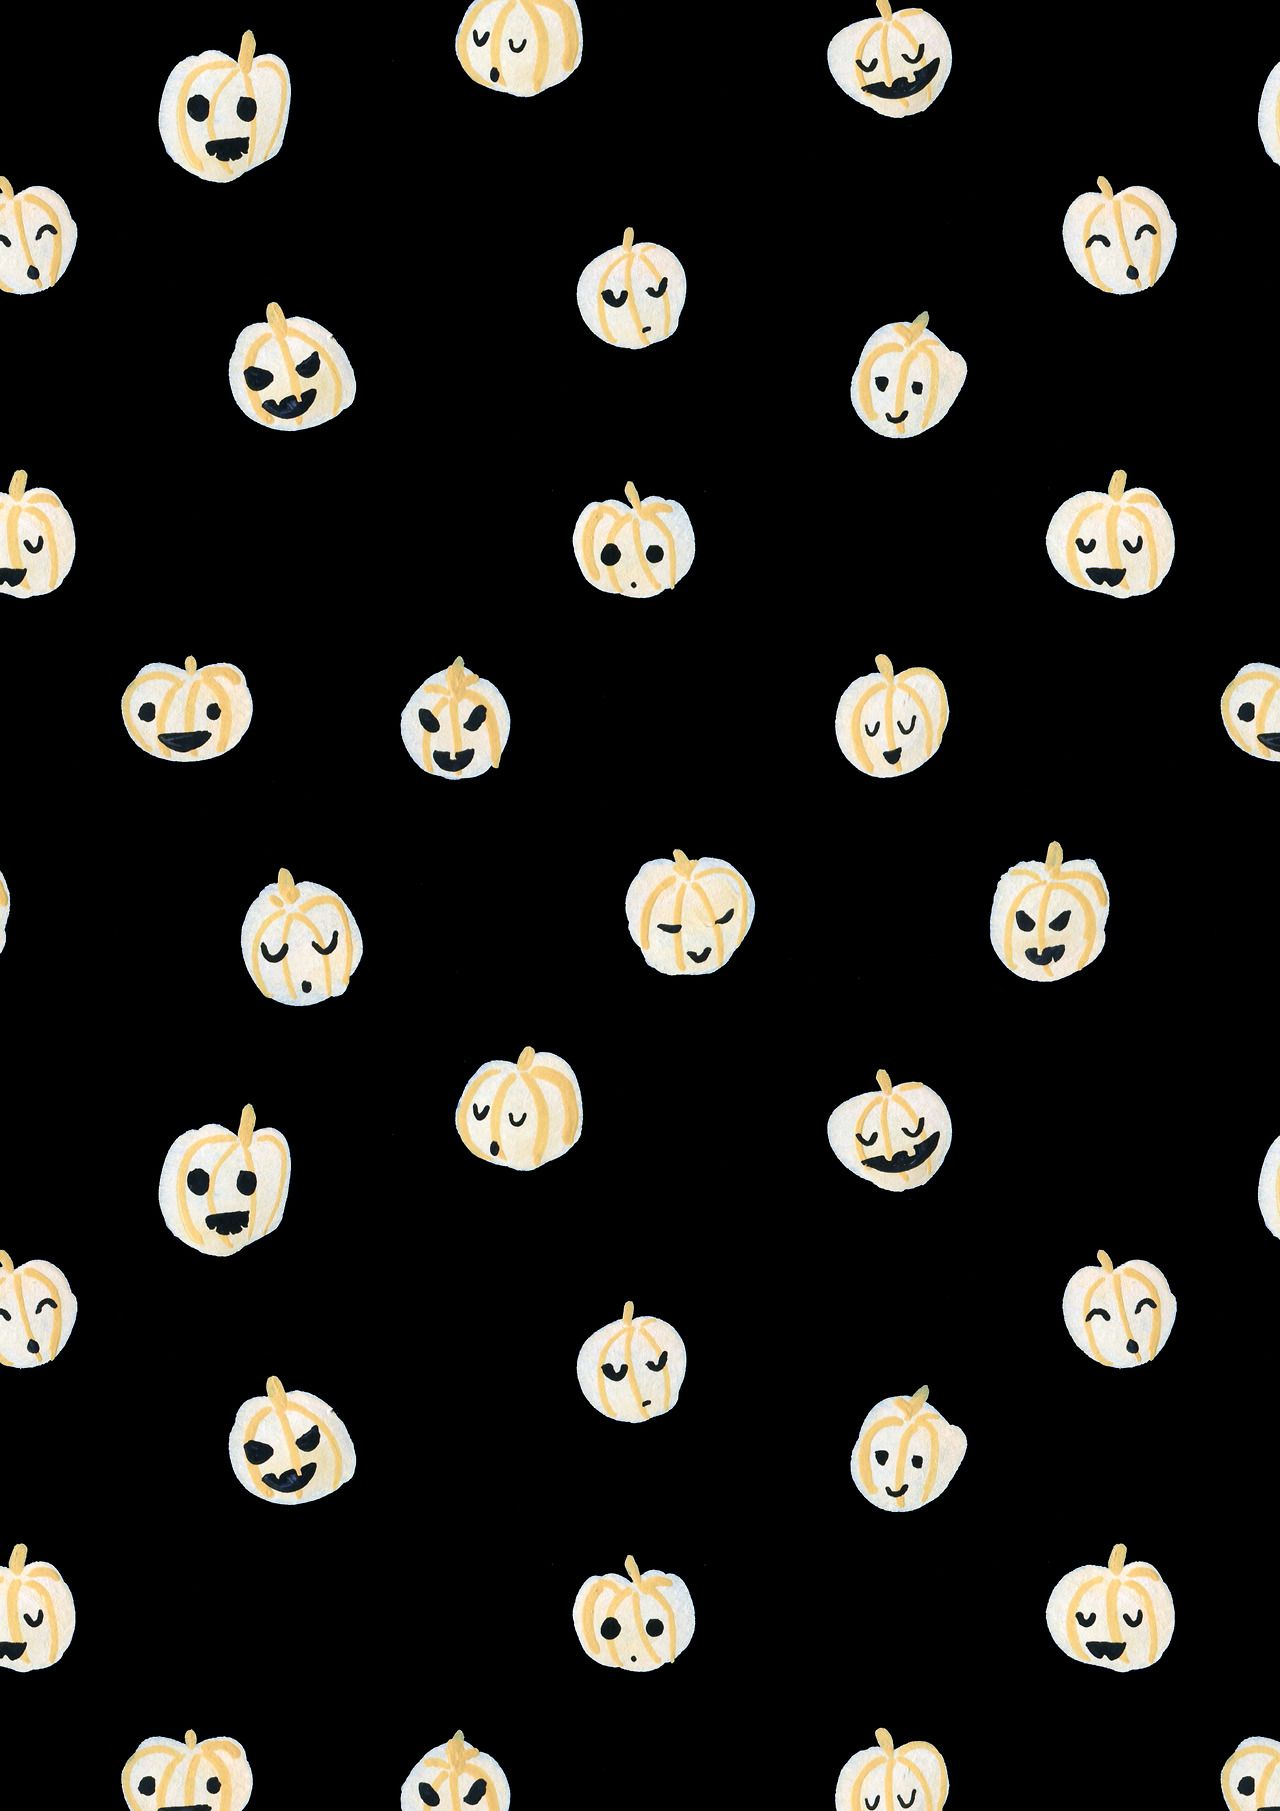 Ghosts background Halloween wallpaper iphone, Halloween